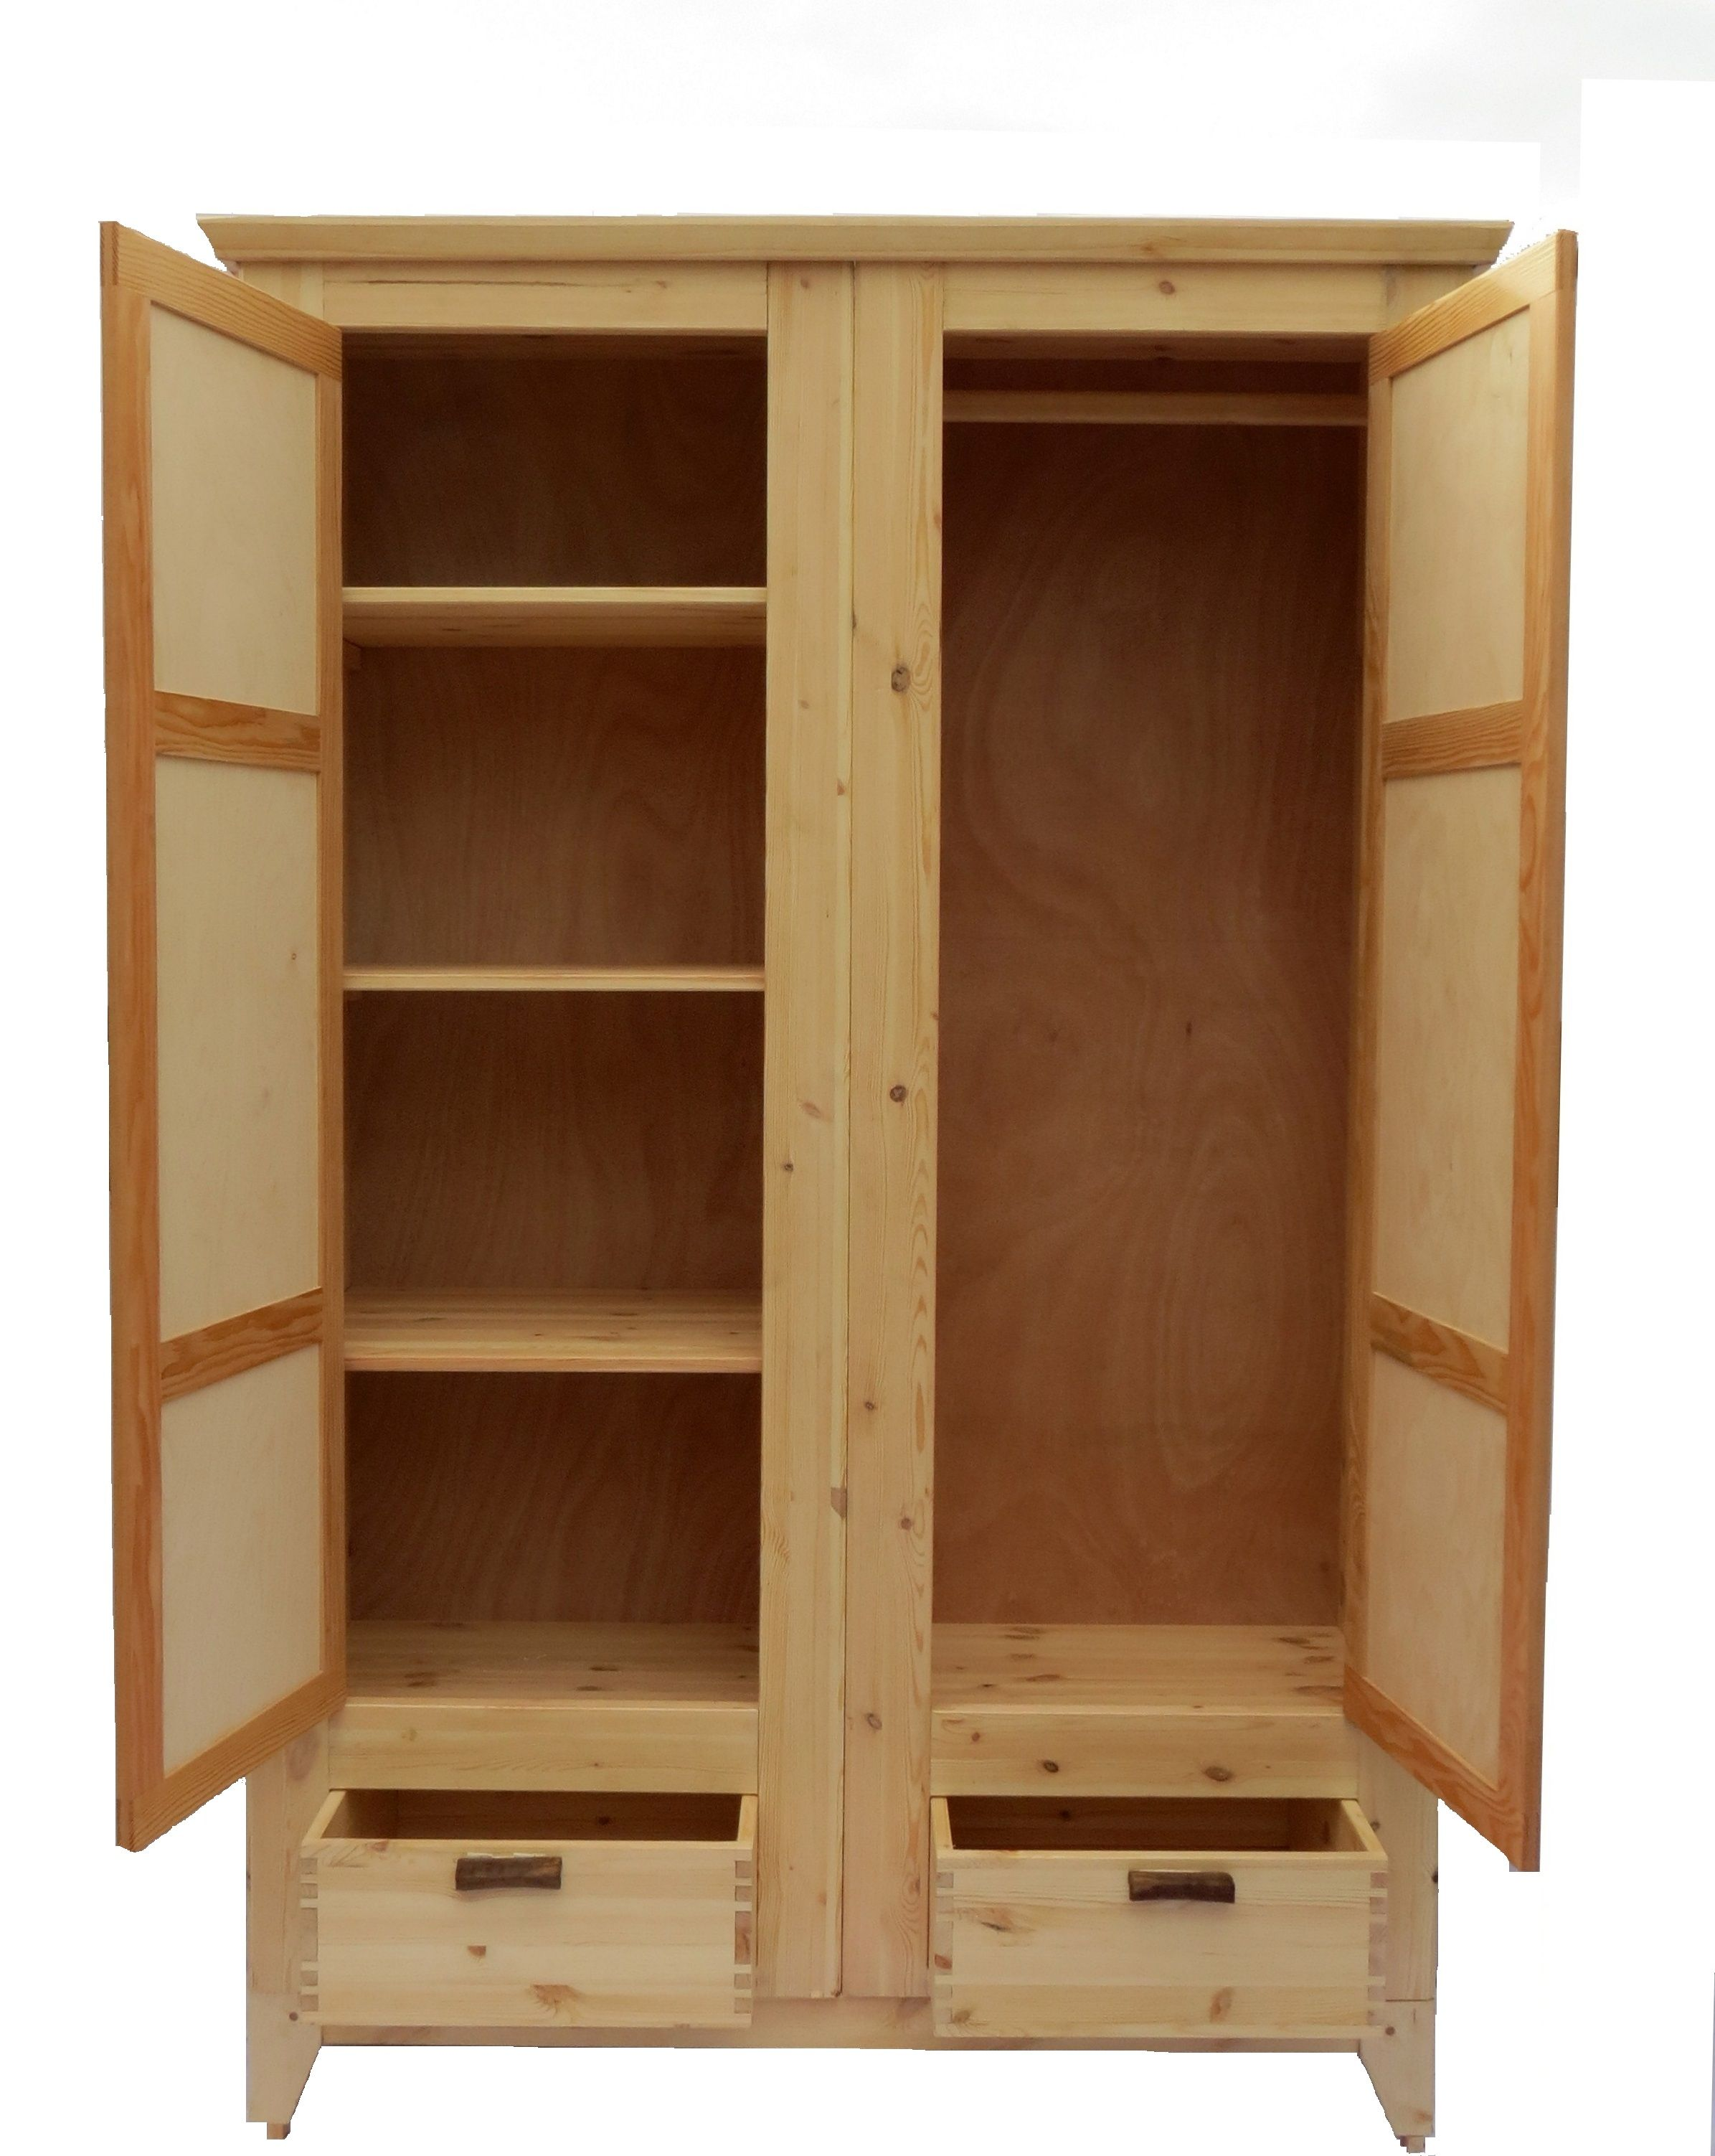 Clothing Cupboards Clothes Cabinet Reader 39s Gallery Fine Woodworking М